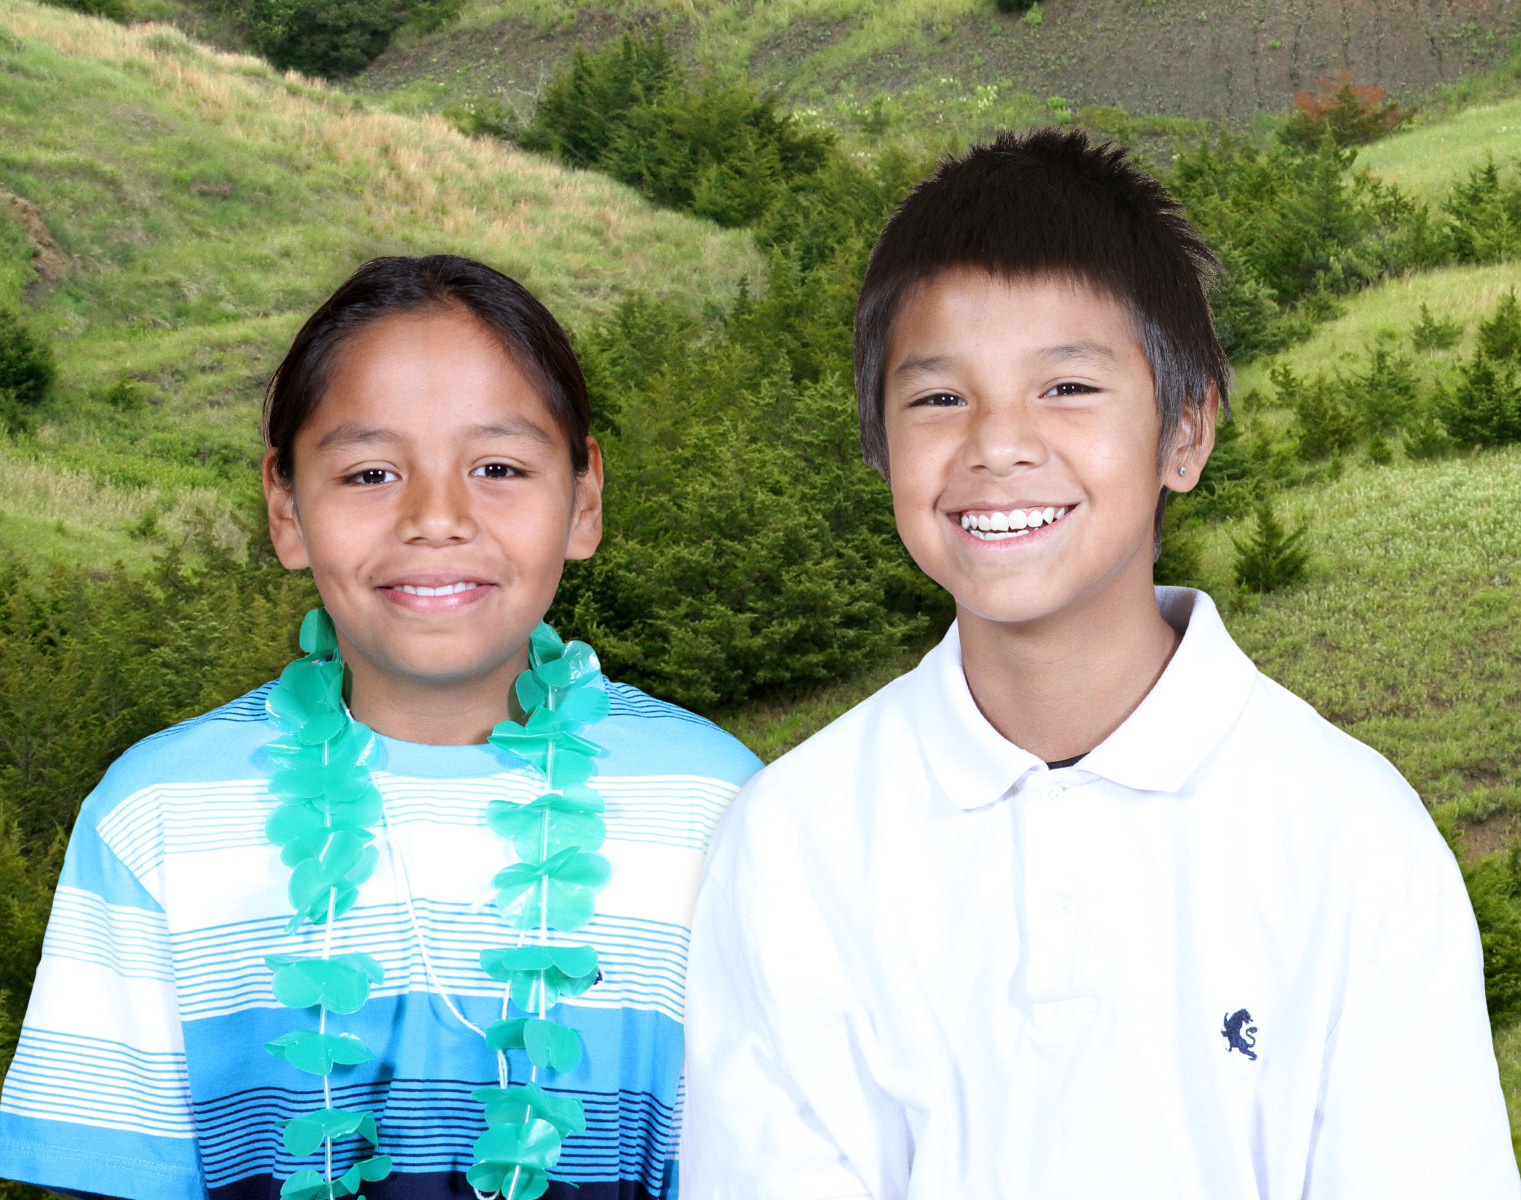 St. Joseph's hosts donor luncheons in cities across the U.S. Hear the Lakota students tell you their story!